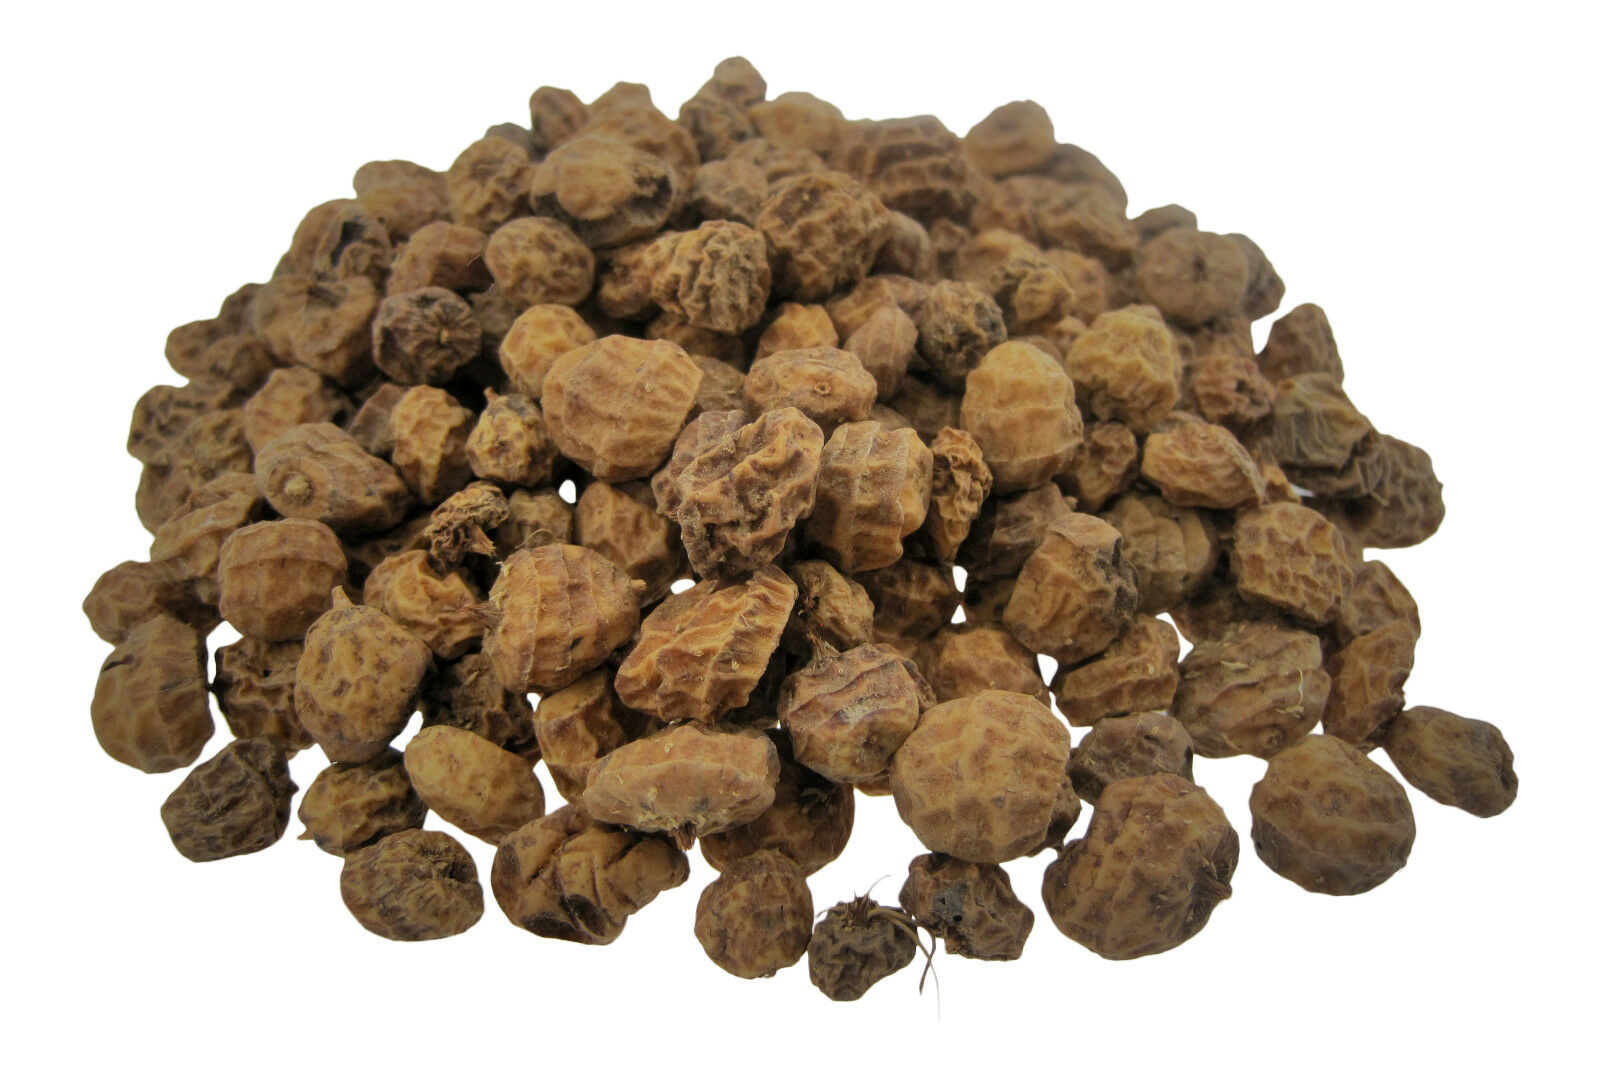 2.89Eur   kg Chufas XL Natural Mezclado Mix 10kg 6-22mm Tiger Nuts